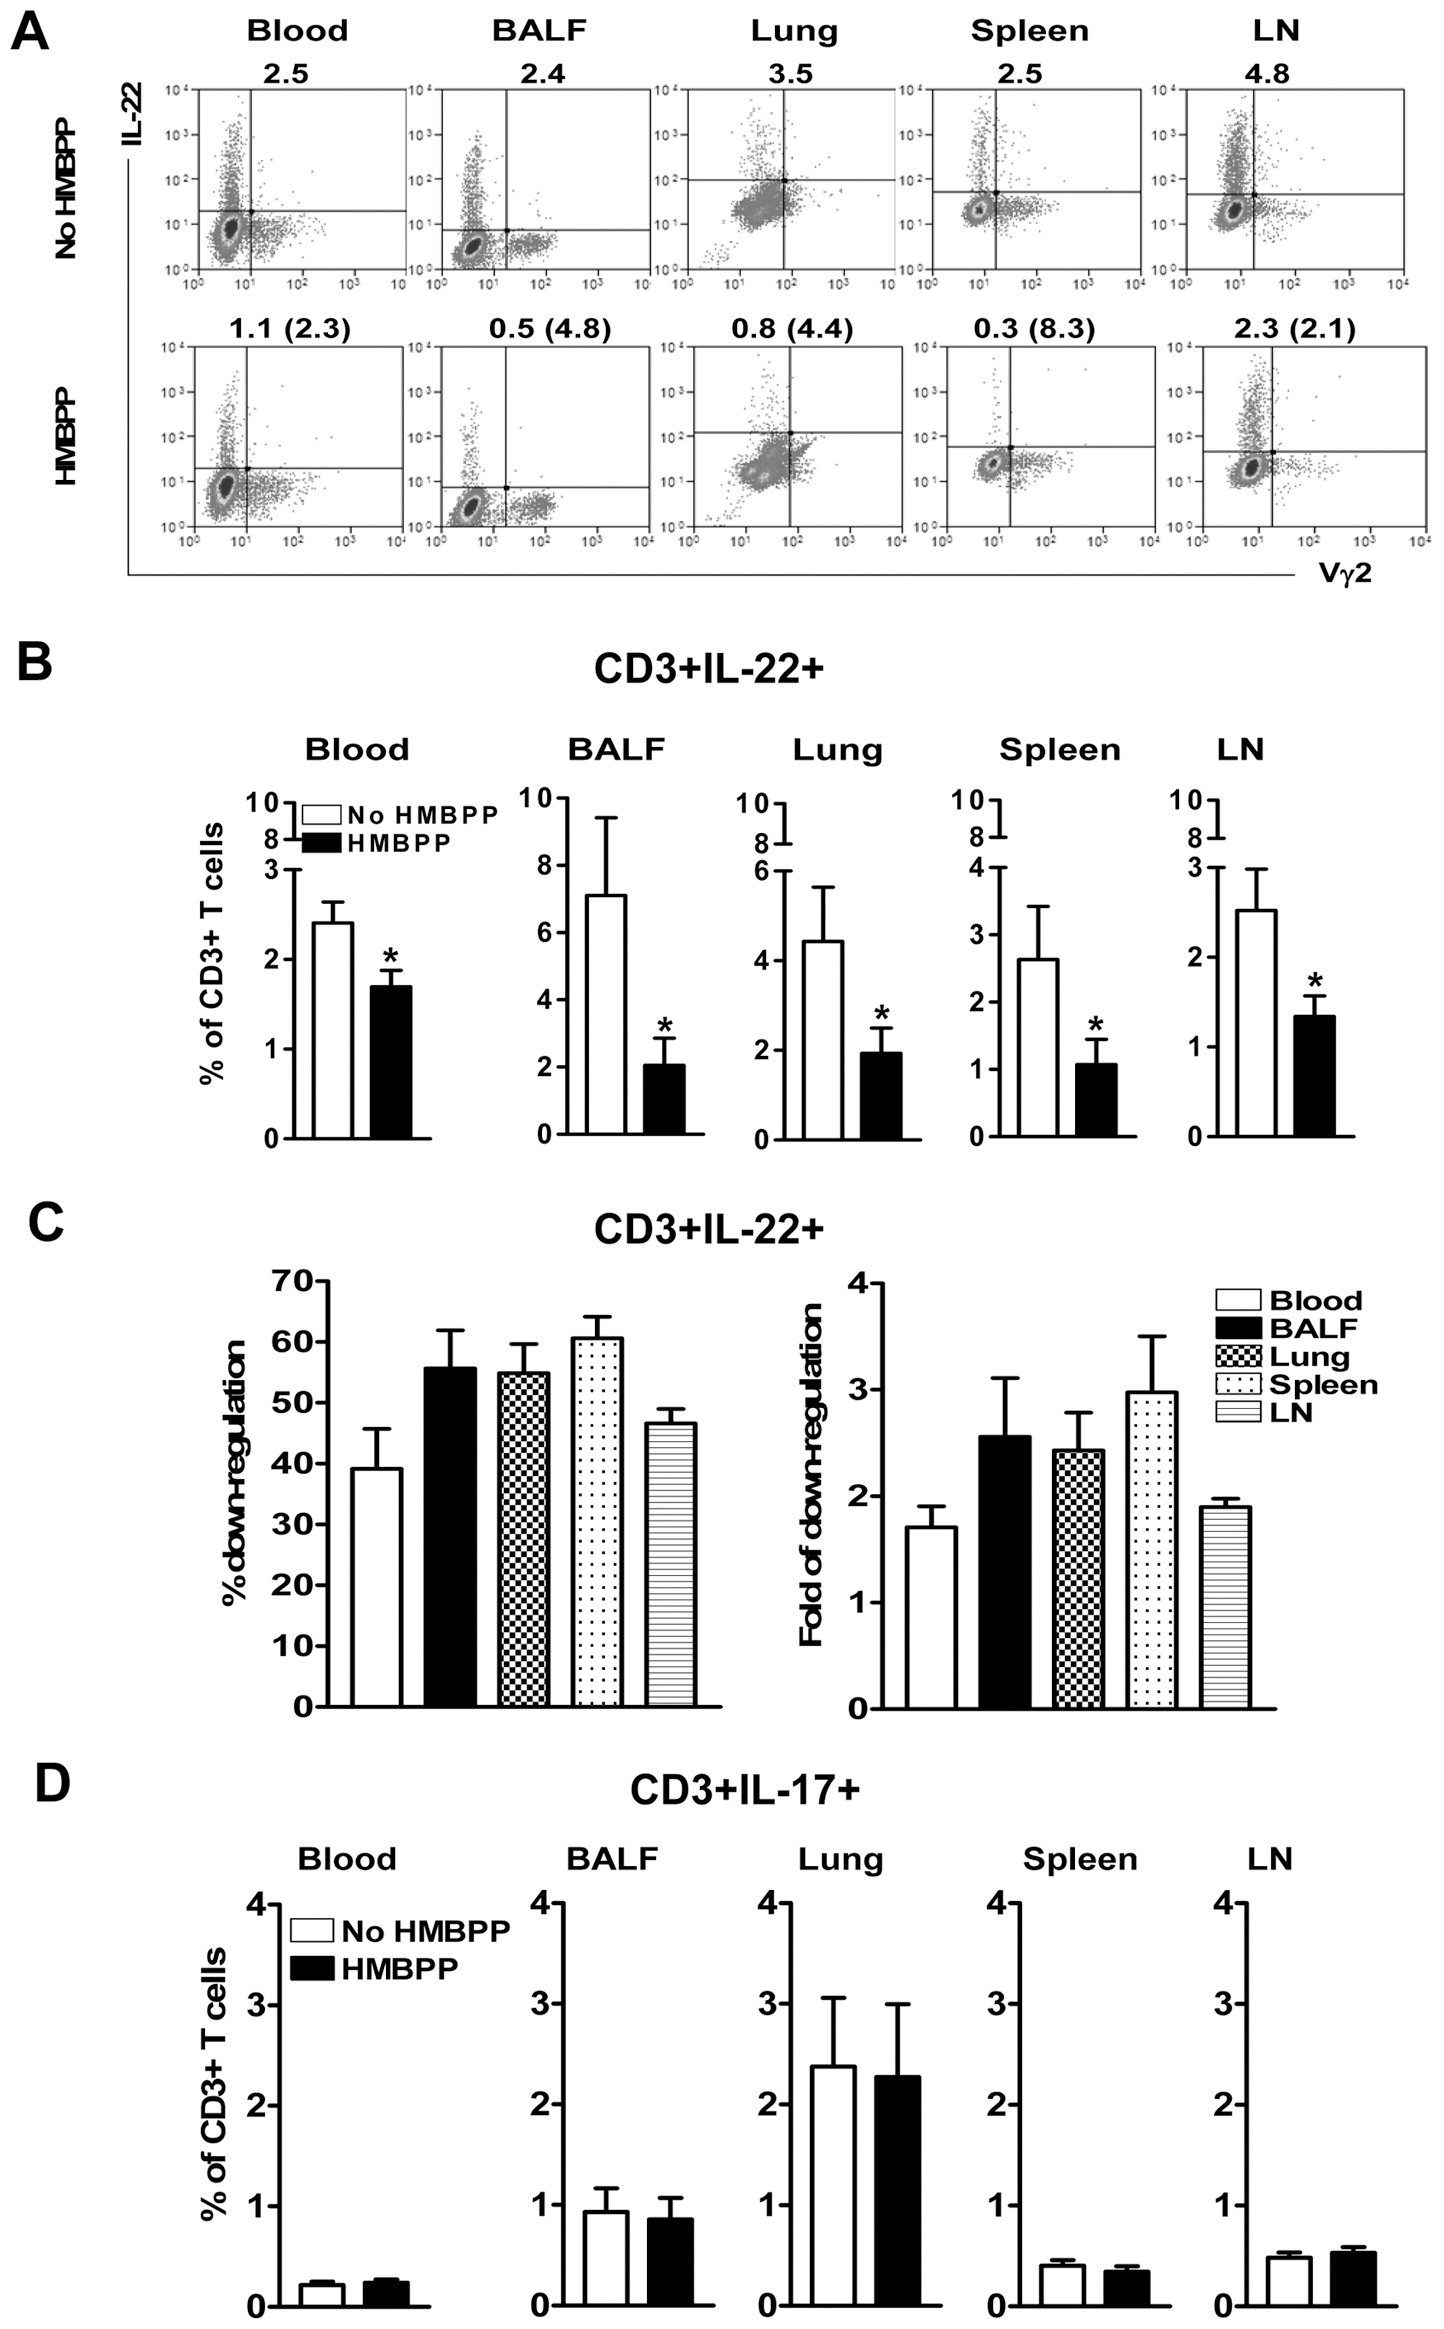 Phosphoantigen HMBPP activation of Vγ2Vδ2 T cells down-regulated the capability of T cells to actively produce IL-22 but not IL-17 <i>de novo</i> in lymphocytes from blood, lungs/BAL fluid, spleens and lymph nodes.